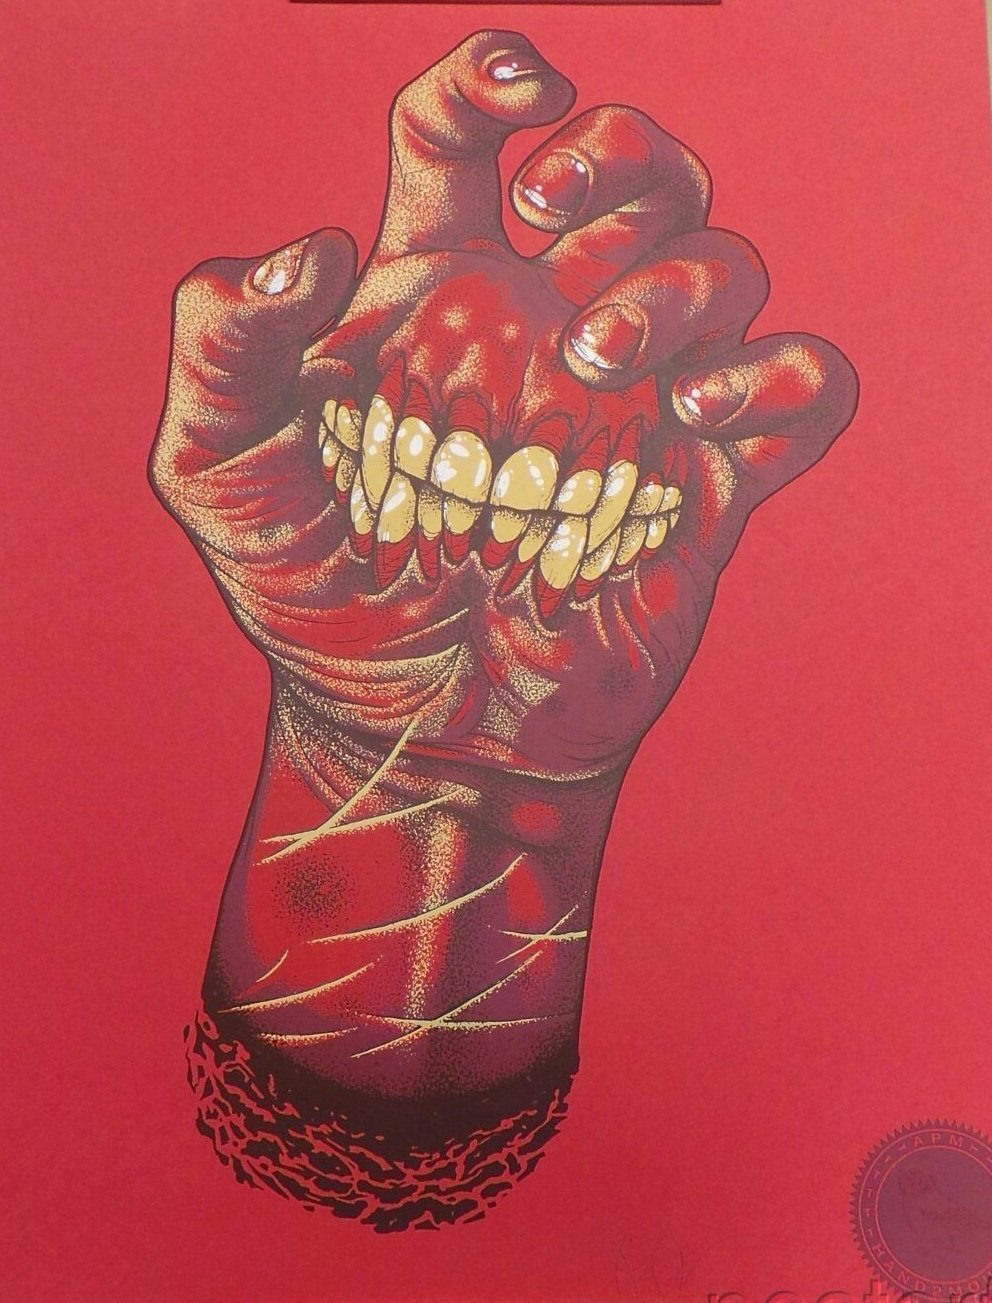 John Baizley Hand2Mouth Screenprint Poster Red Hot Edition Baroness